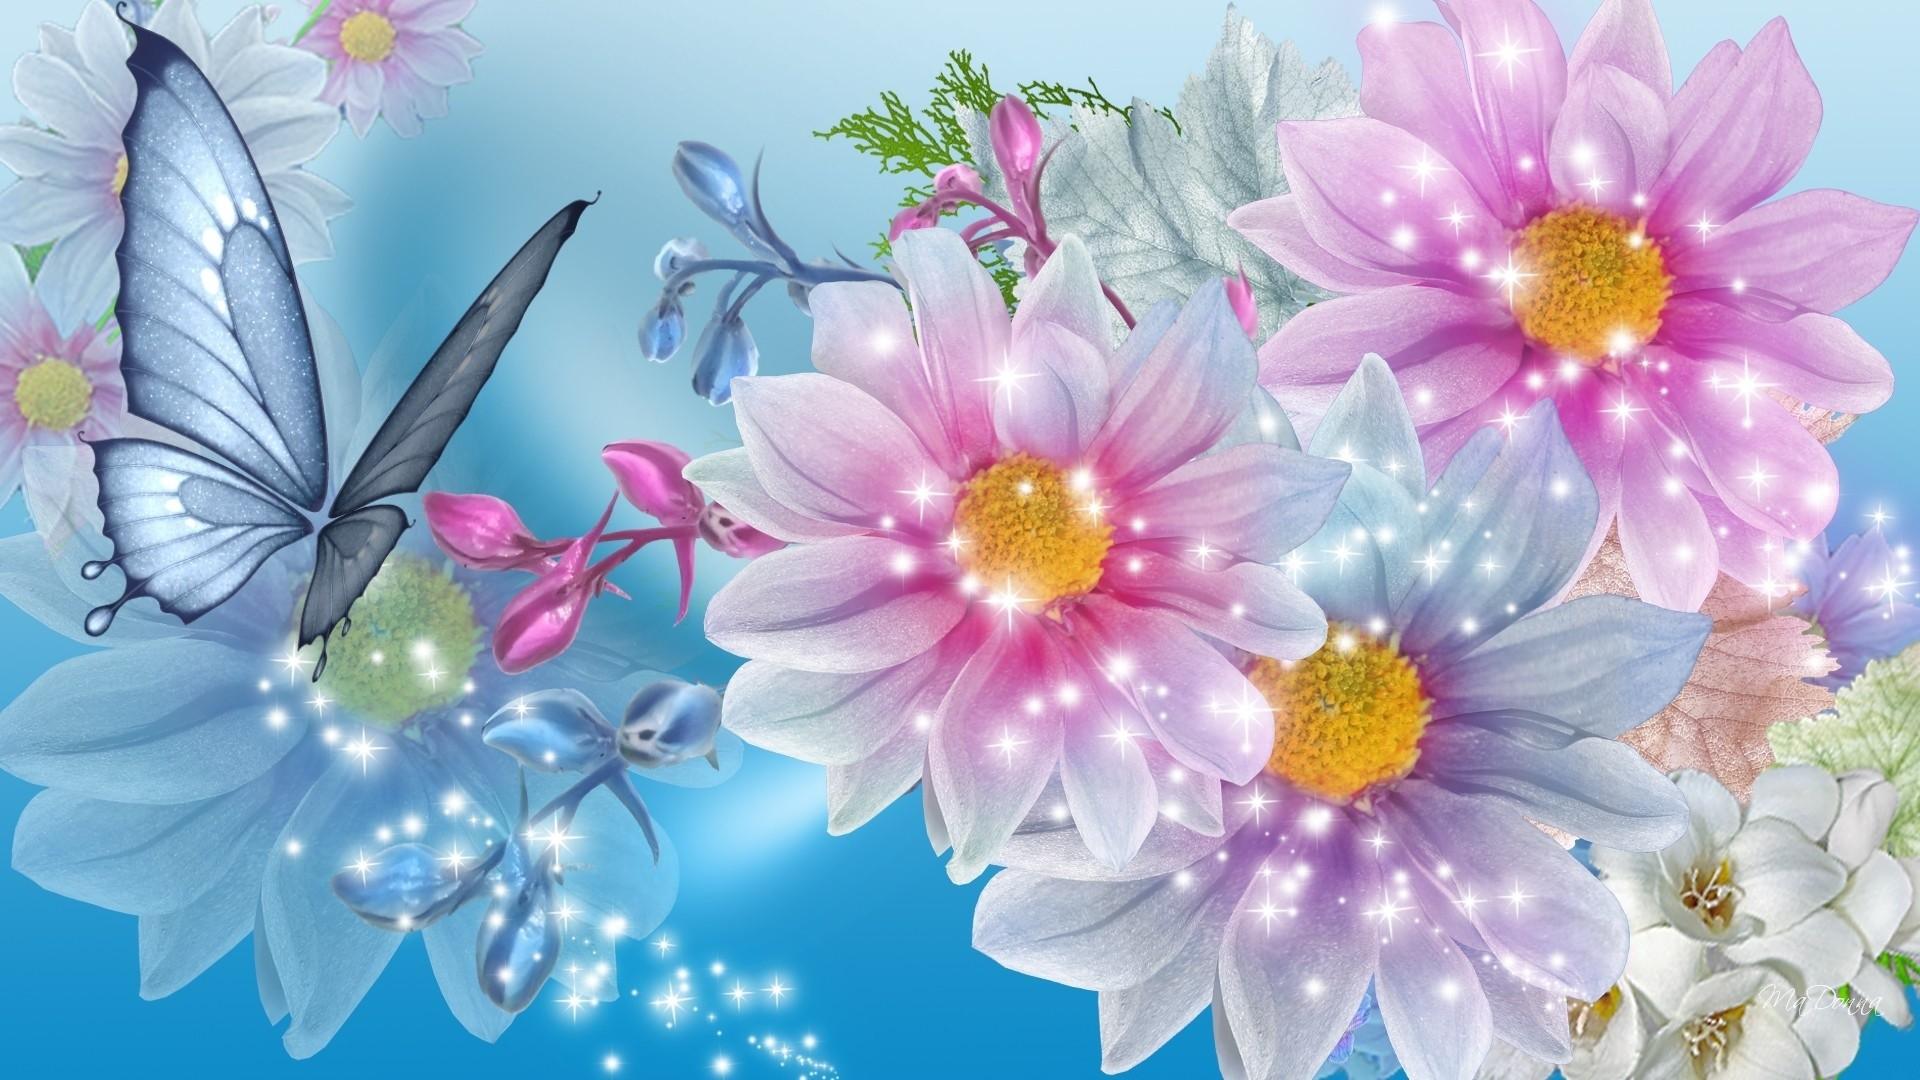 Flower wallpaper 64 images 1920x1080 30 beautiful flower wallpaper free to download voltagebd Gallery